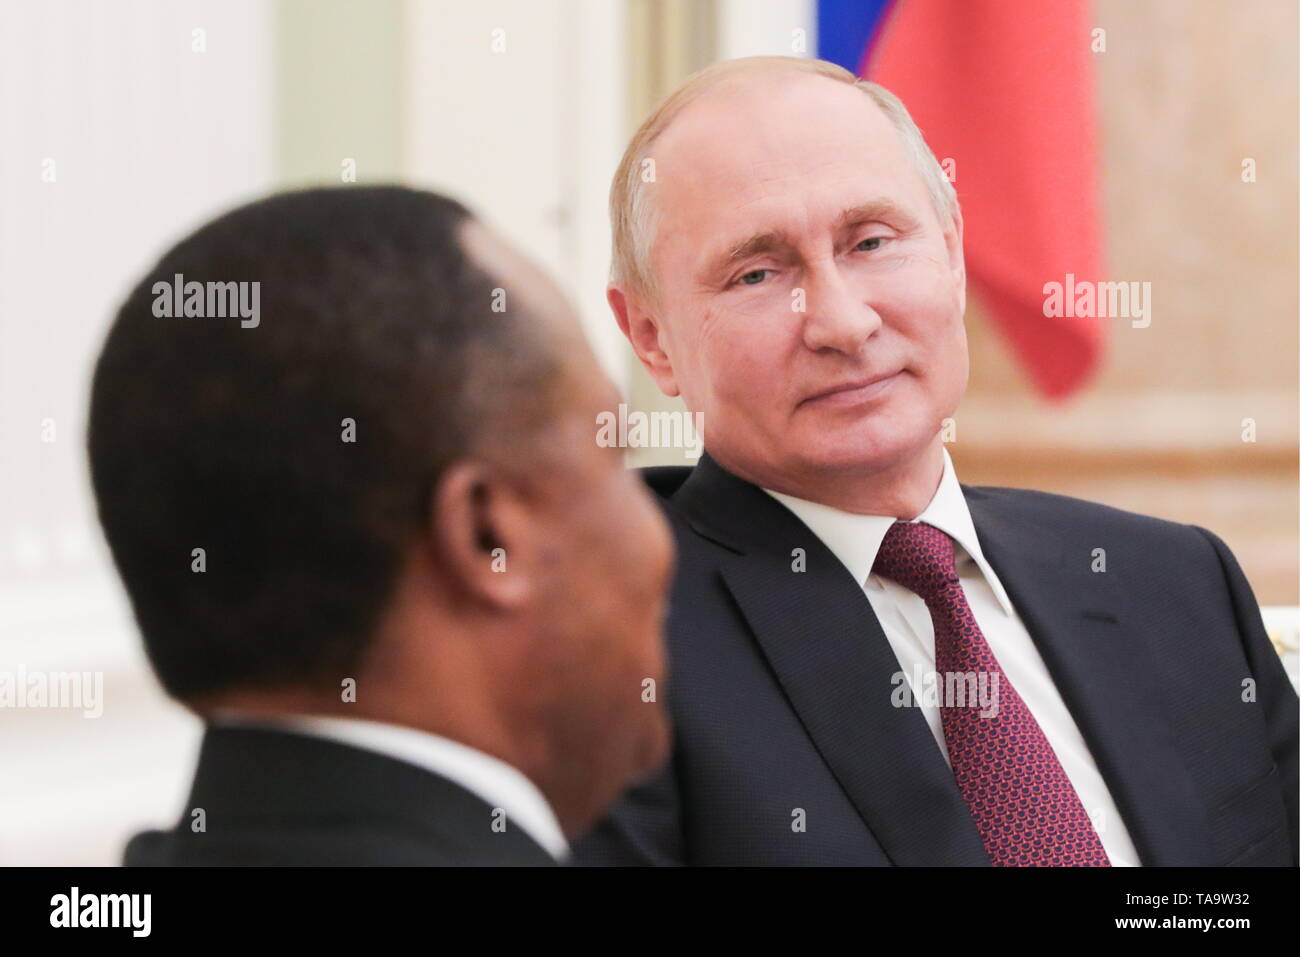 Moscow, Russia. 23rd May, 2019. MOSCOW, RUSSIA - MAY 23, 2019: President of Republic of the Congo, Denis Sassou Nguesso (L) and Russia's President Vladimir Putin during a meeting at the Moscow Kremlin. Mikhail Klimentyev/Russian Presidential Press and Information Office/TASS Credit: ITAR-TASS News Agency/Alamy Live News - Stock Image